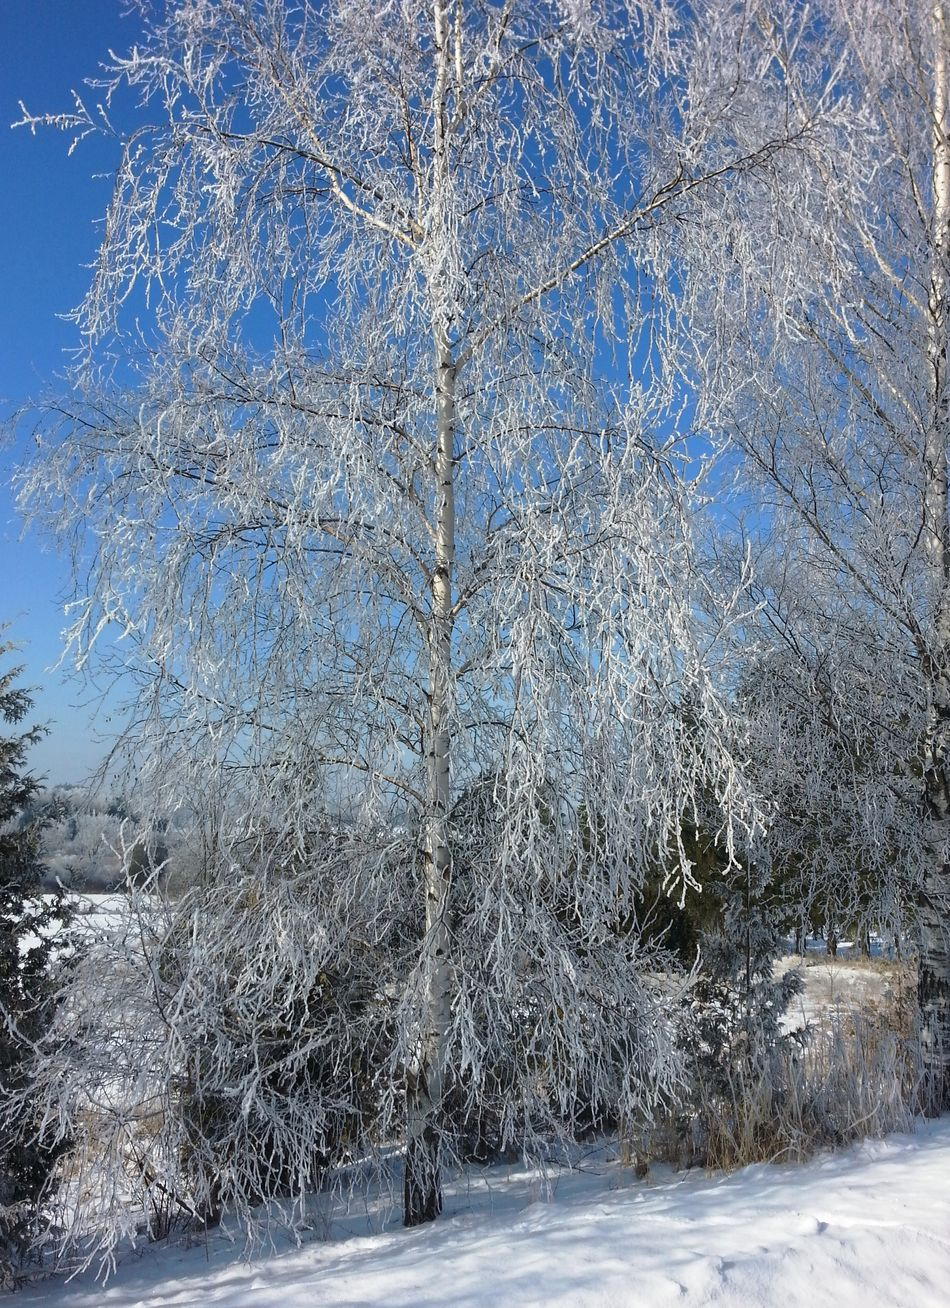 Drapped In Ice Ice Crystals White Birch Pure Blue Sky Winter Frost Winter Wonderland